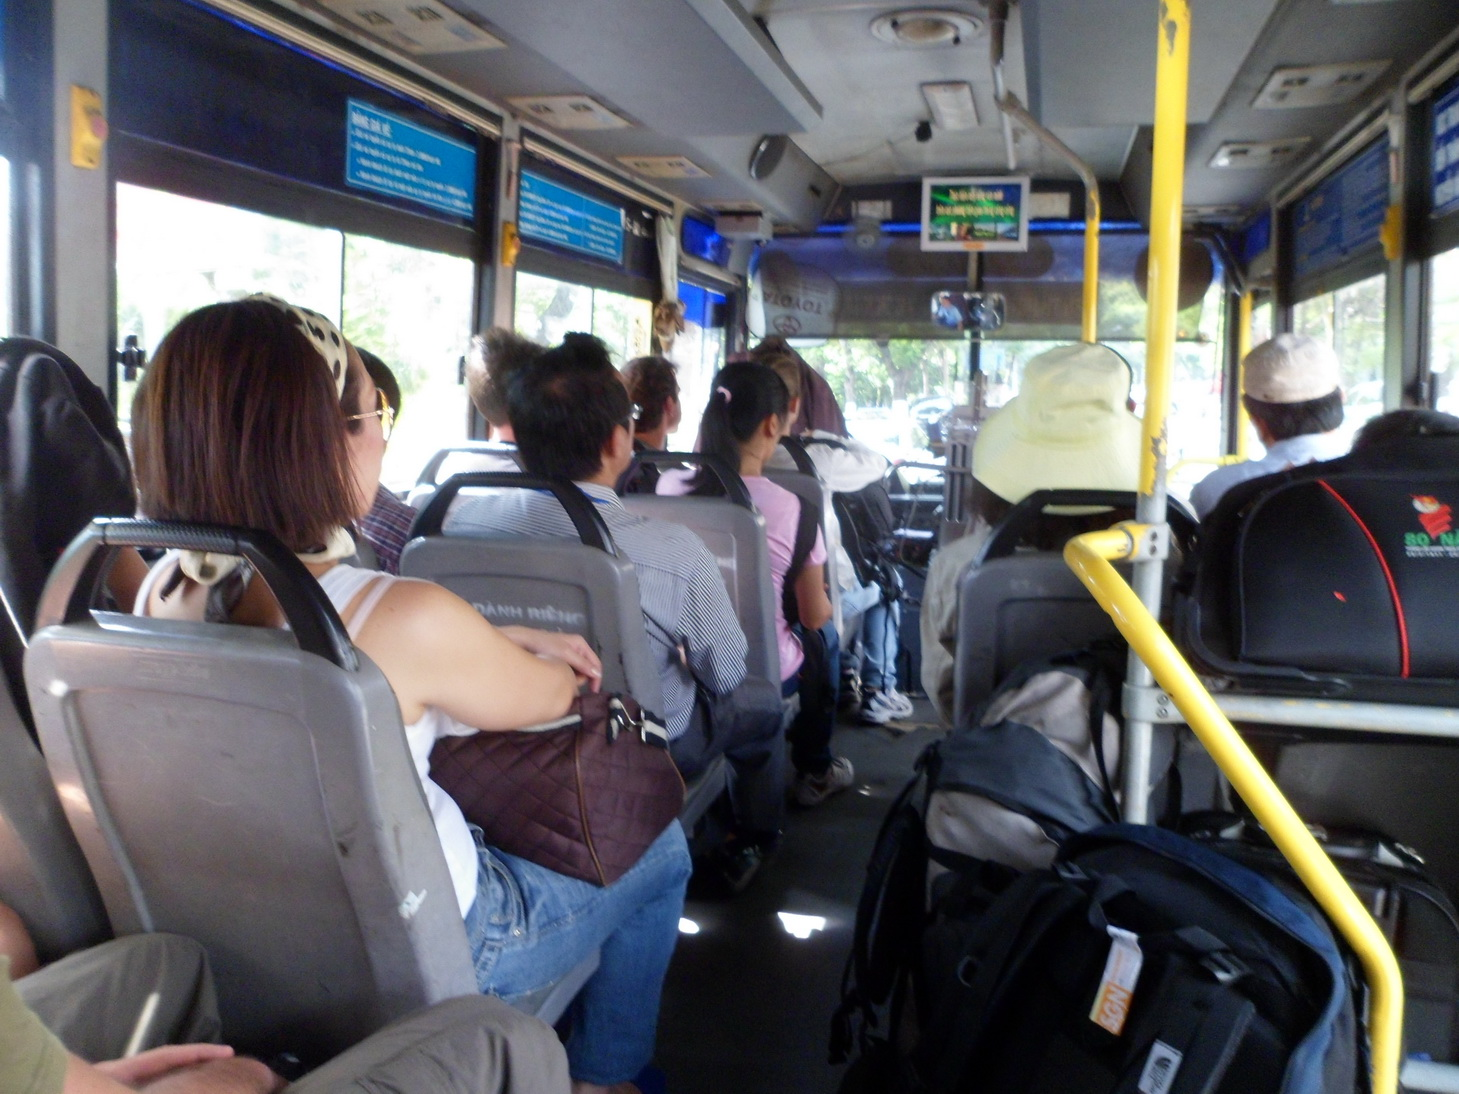 city bus essay Furthermore, it can increase the spaces in the city, because there are less cars parking taking buses and trains is able to keep the environment green, however, one of the disadvantages is that using public transport is inconvenient.